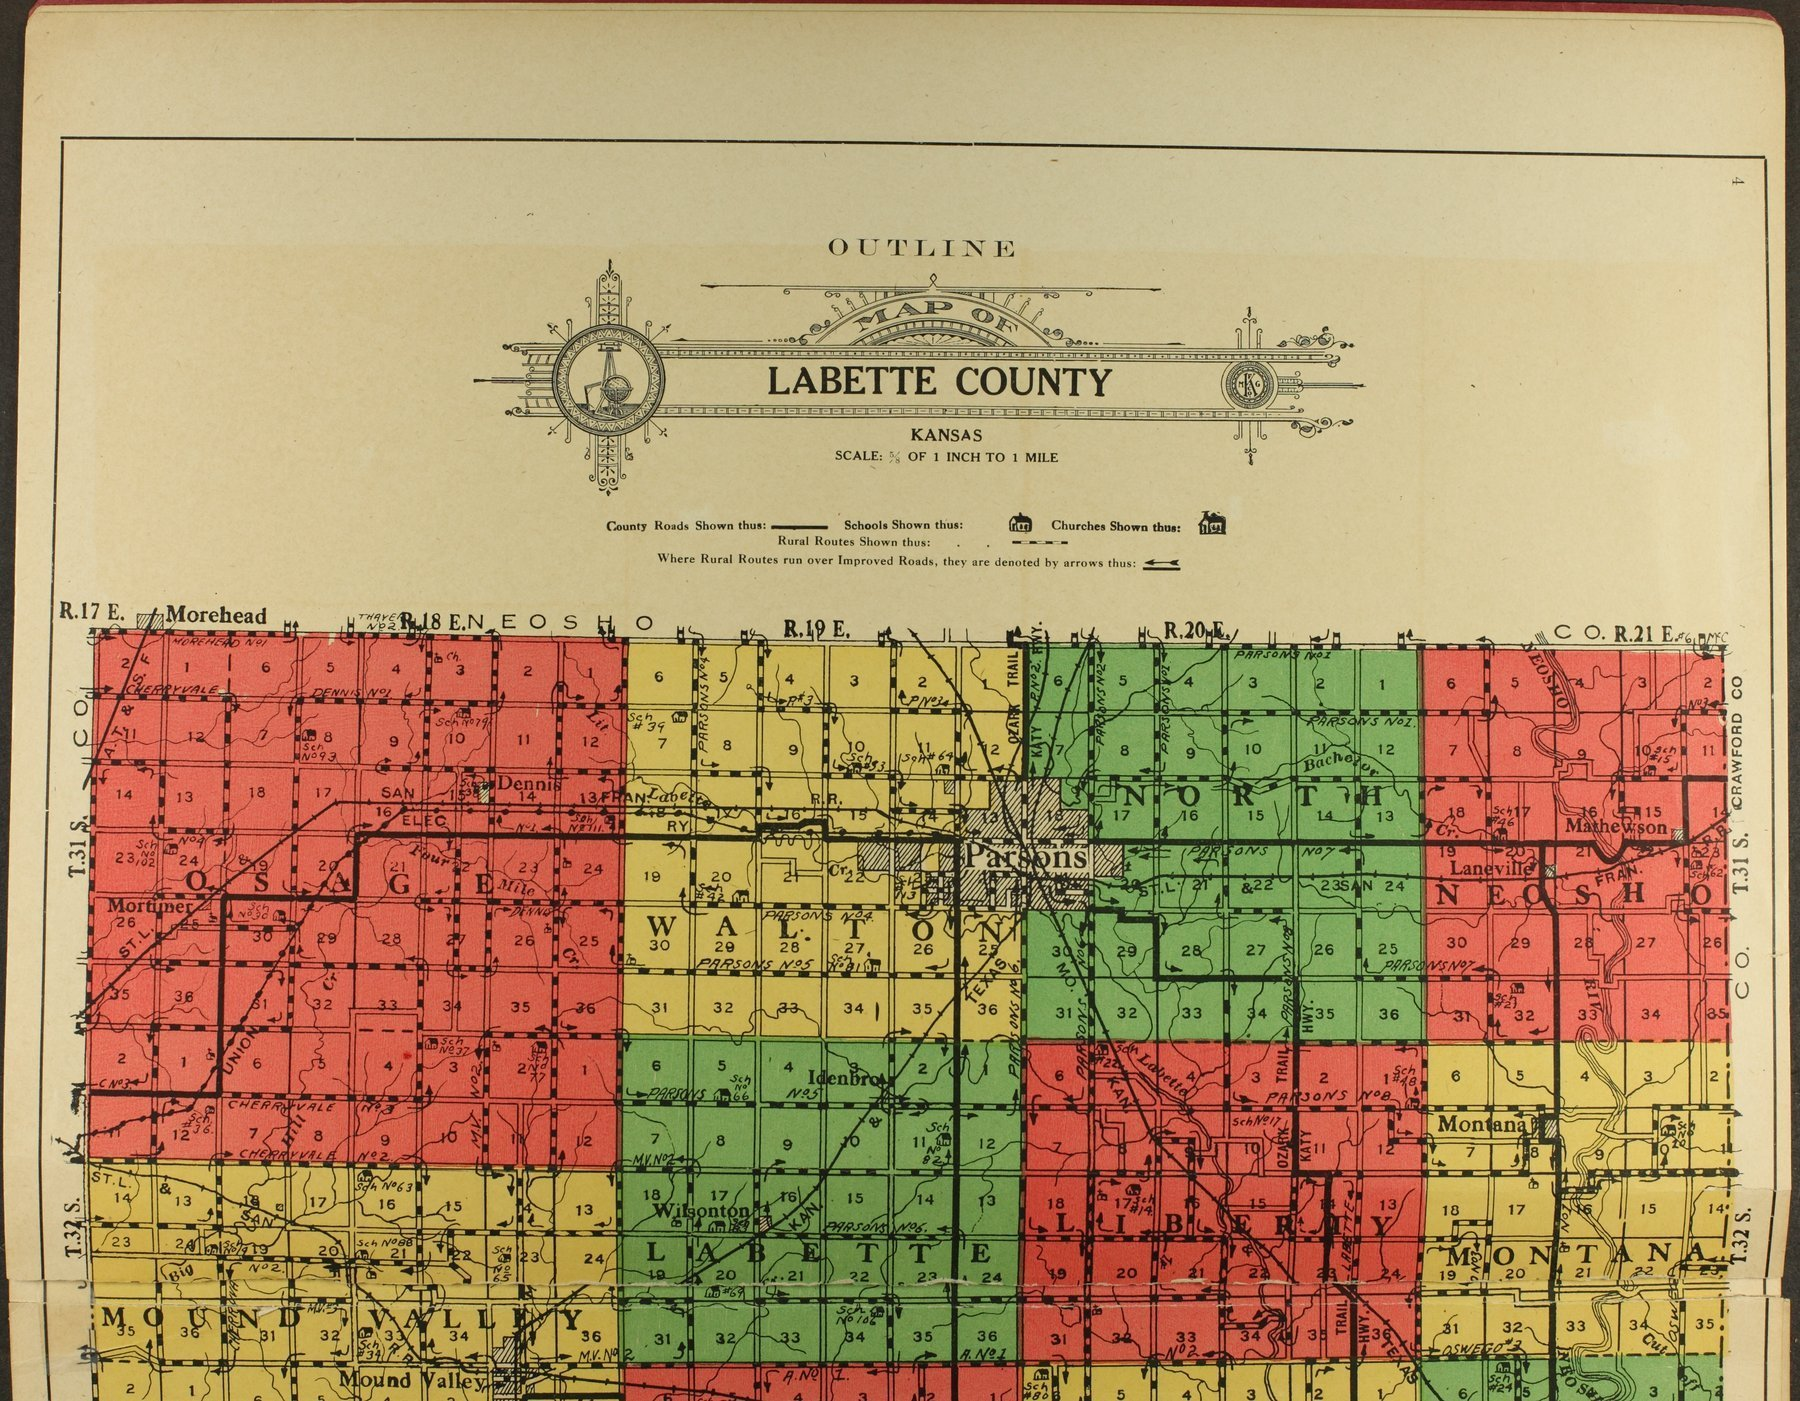 Atlas and plat book of Labette County, Kansas - 4